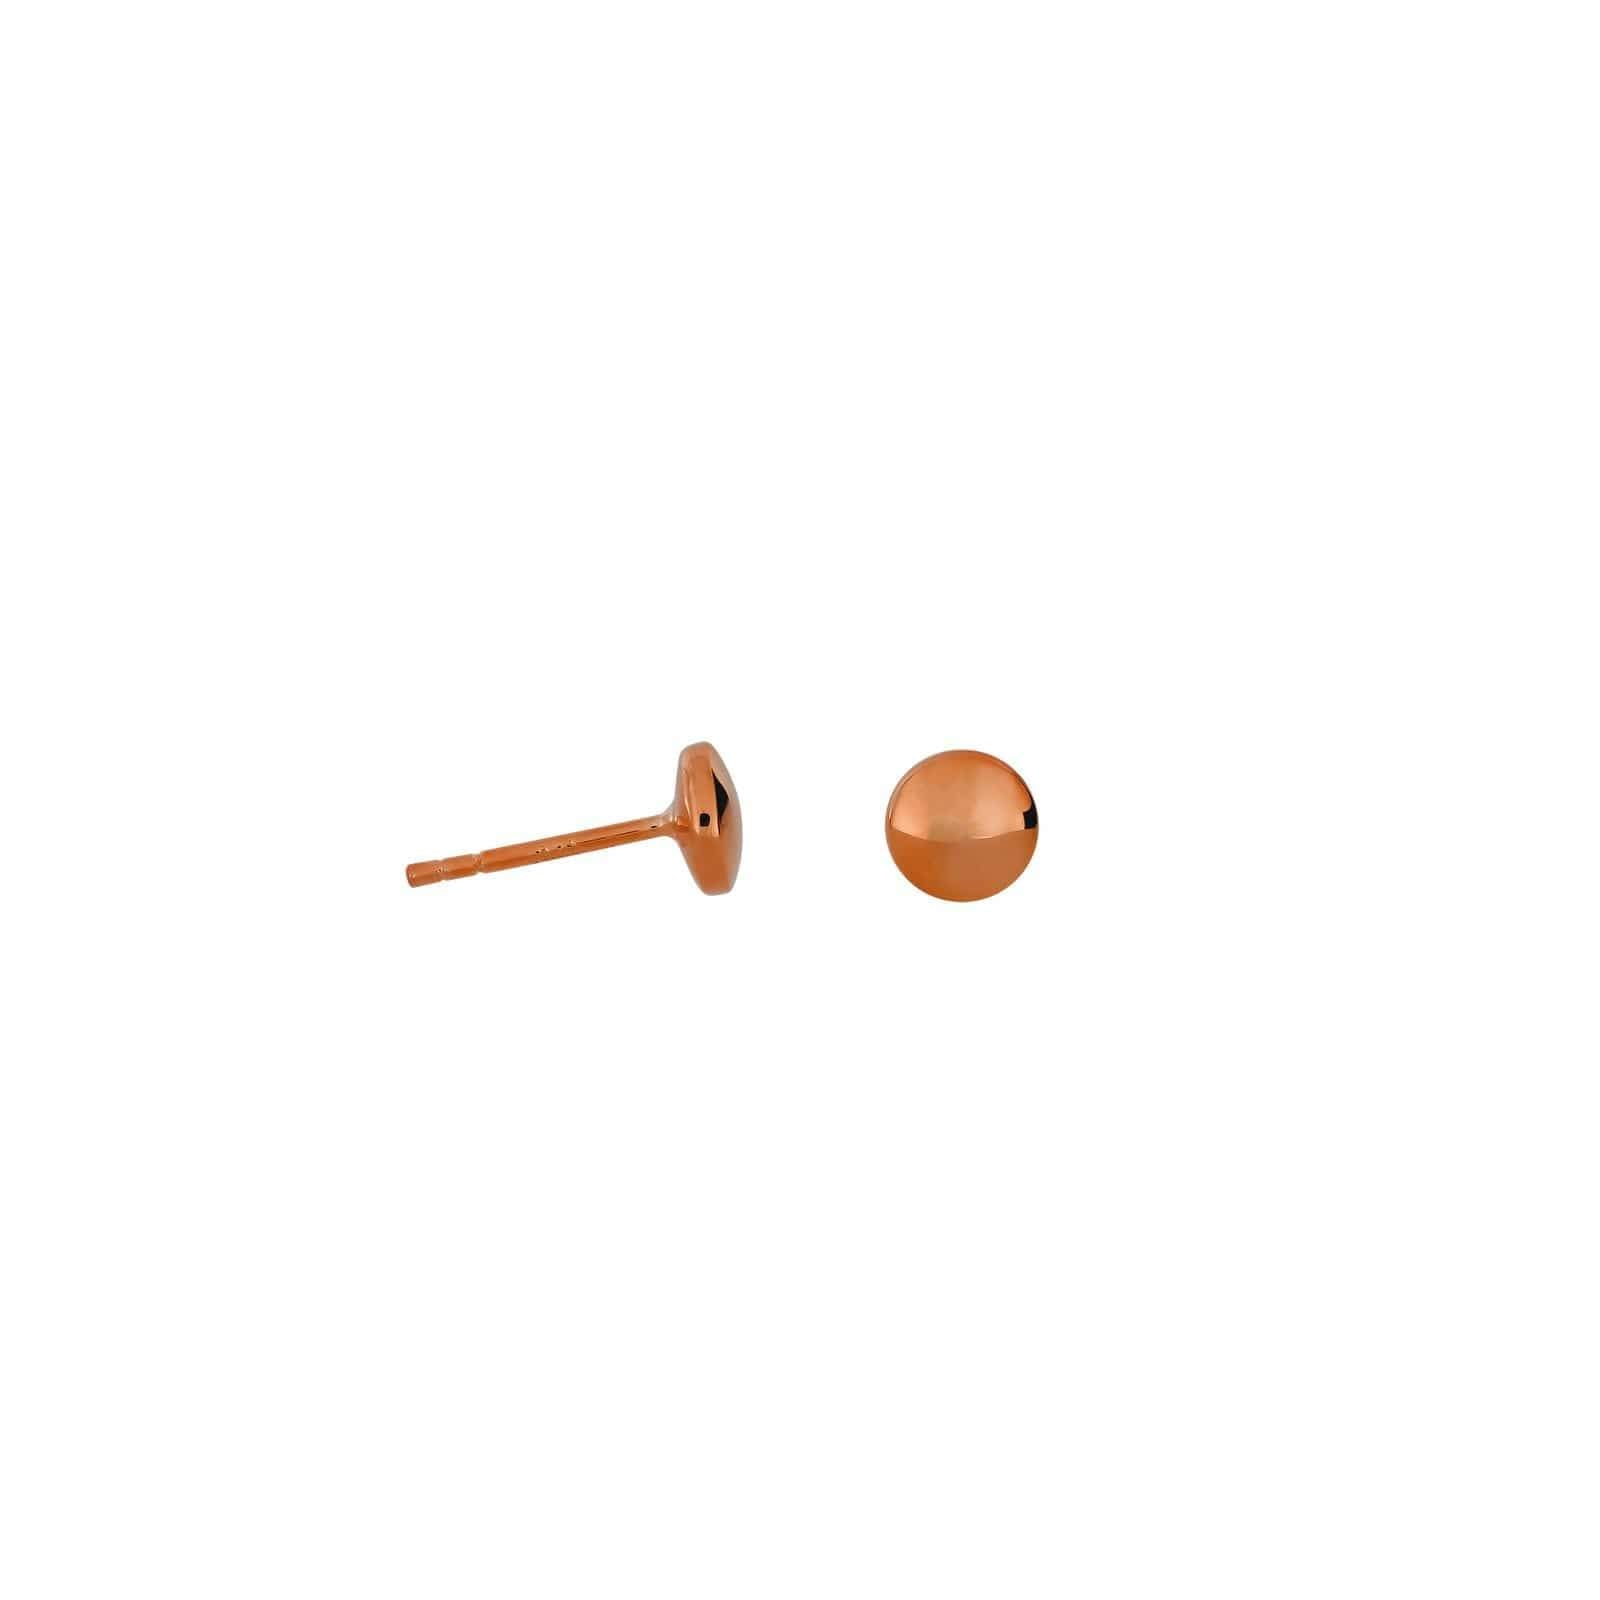 9mm / Rose Gold Vermeil Double Curved Button Stud Earrings - Rose Gold Vermeil